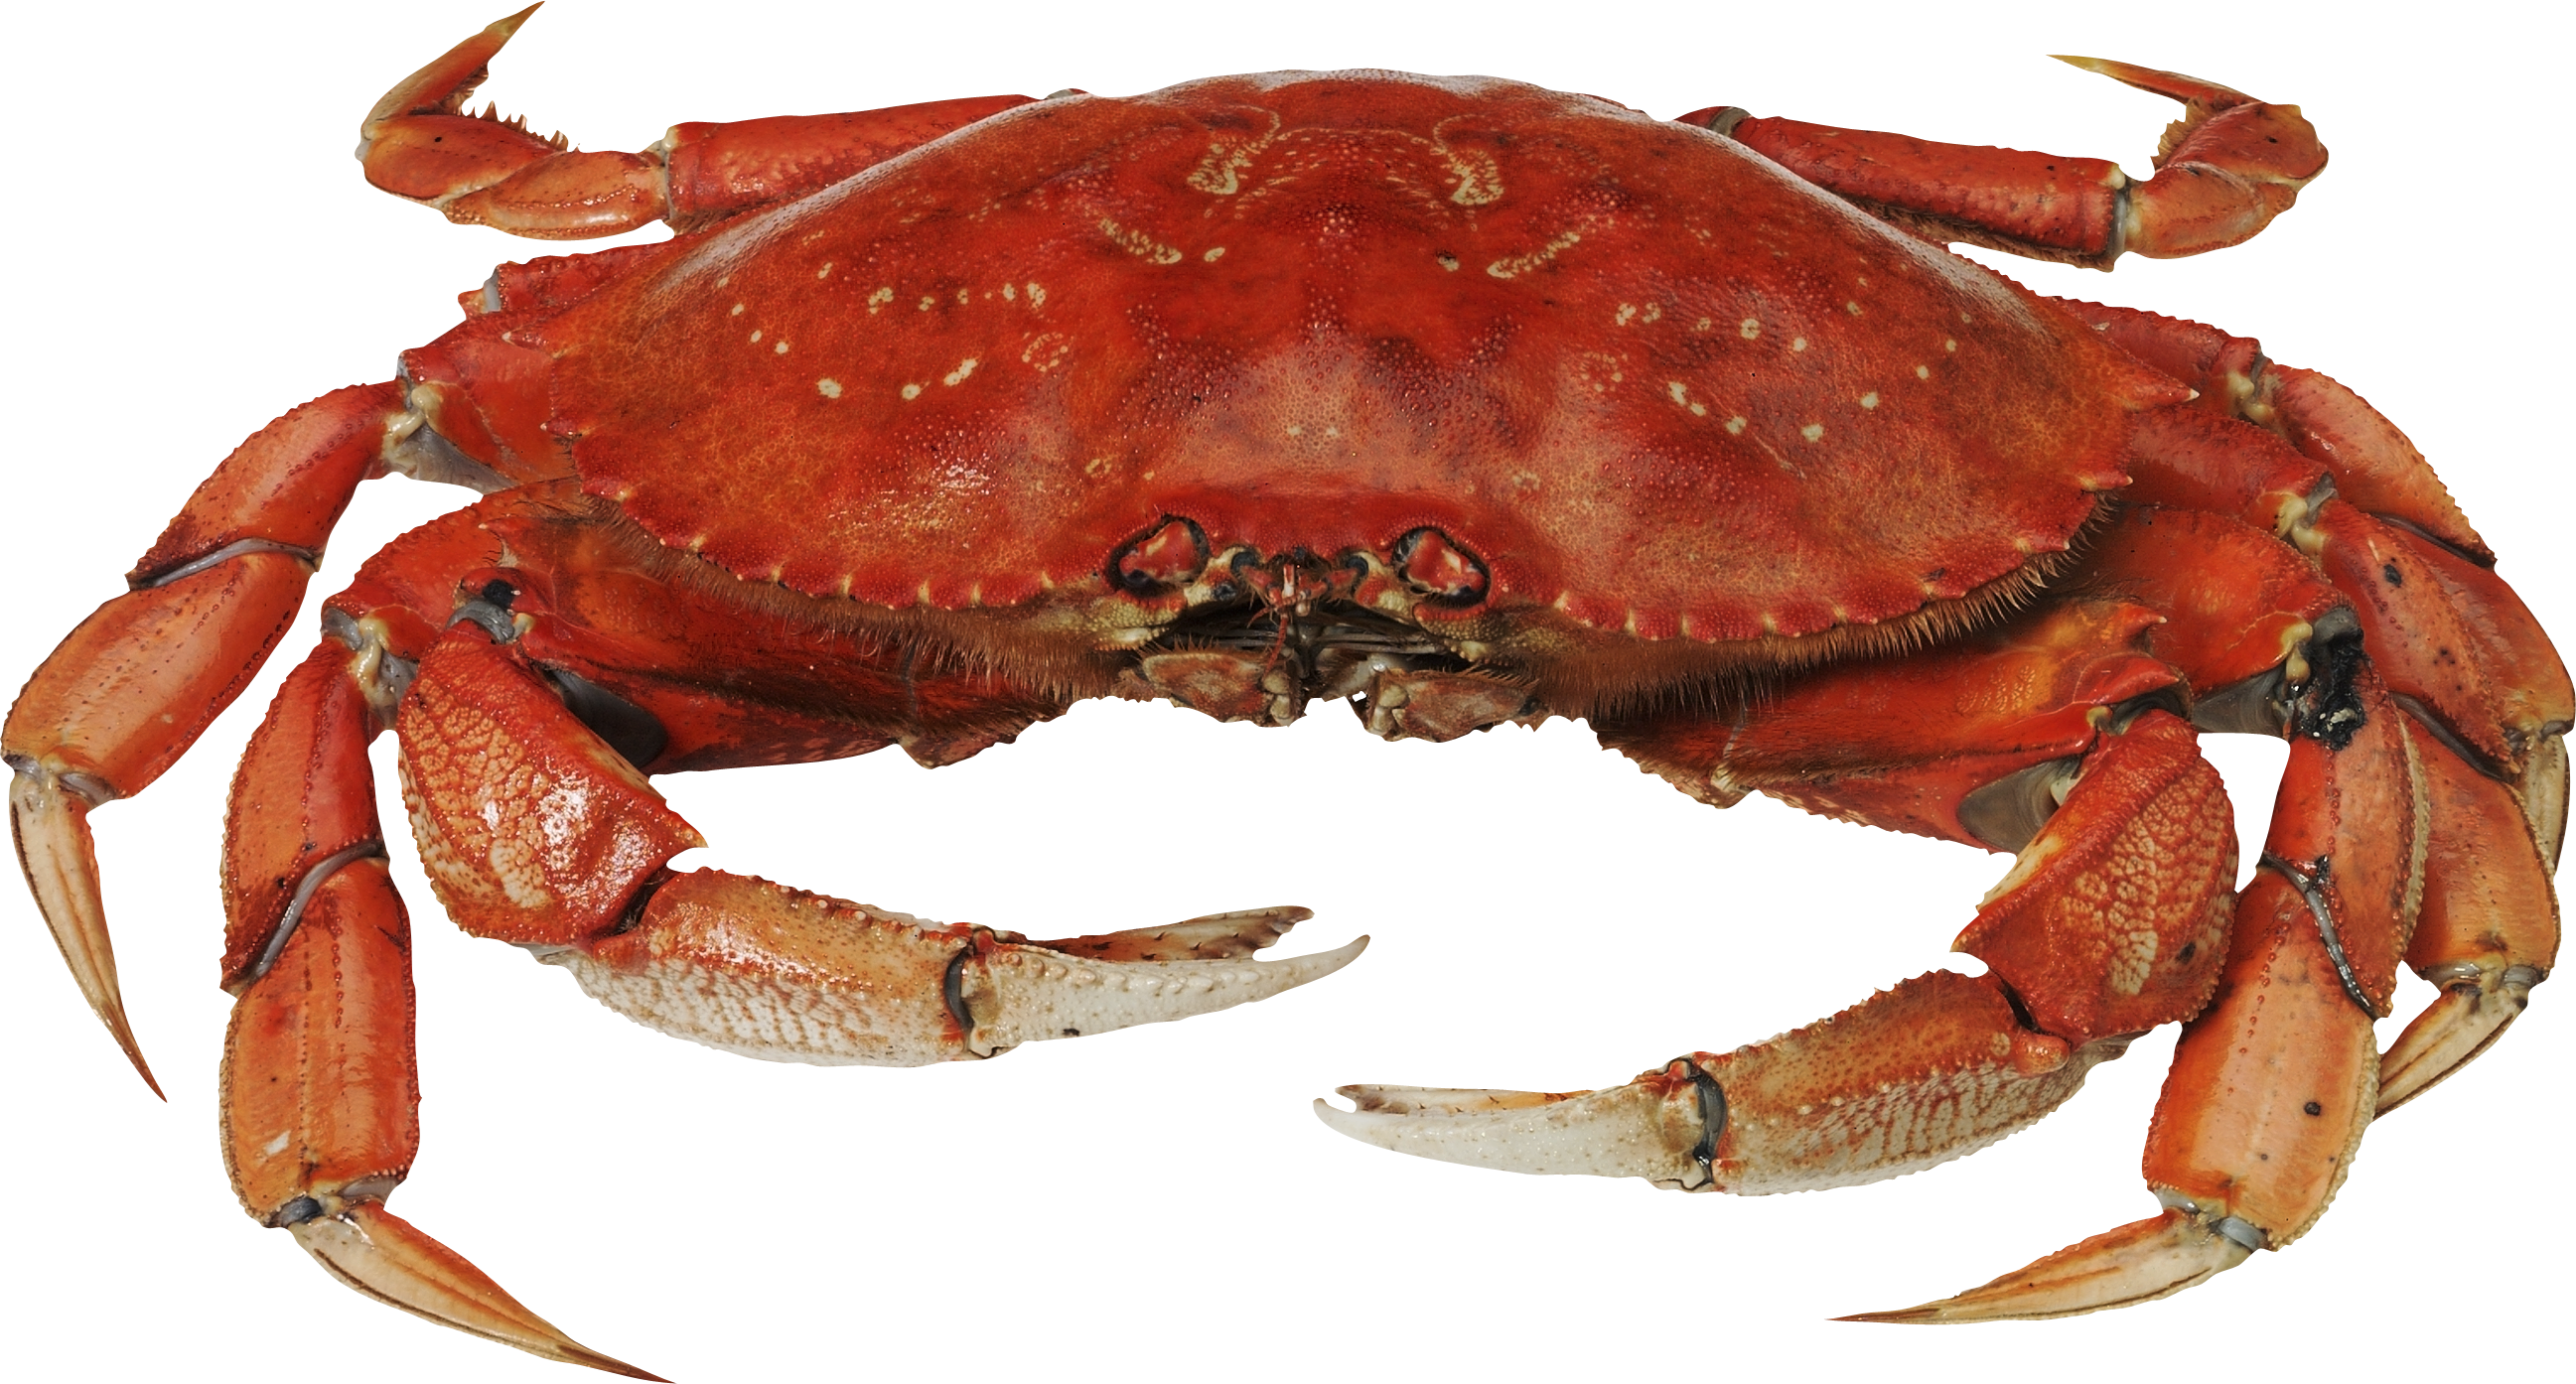 Red standing png image. Crab clipart king crab